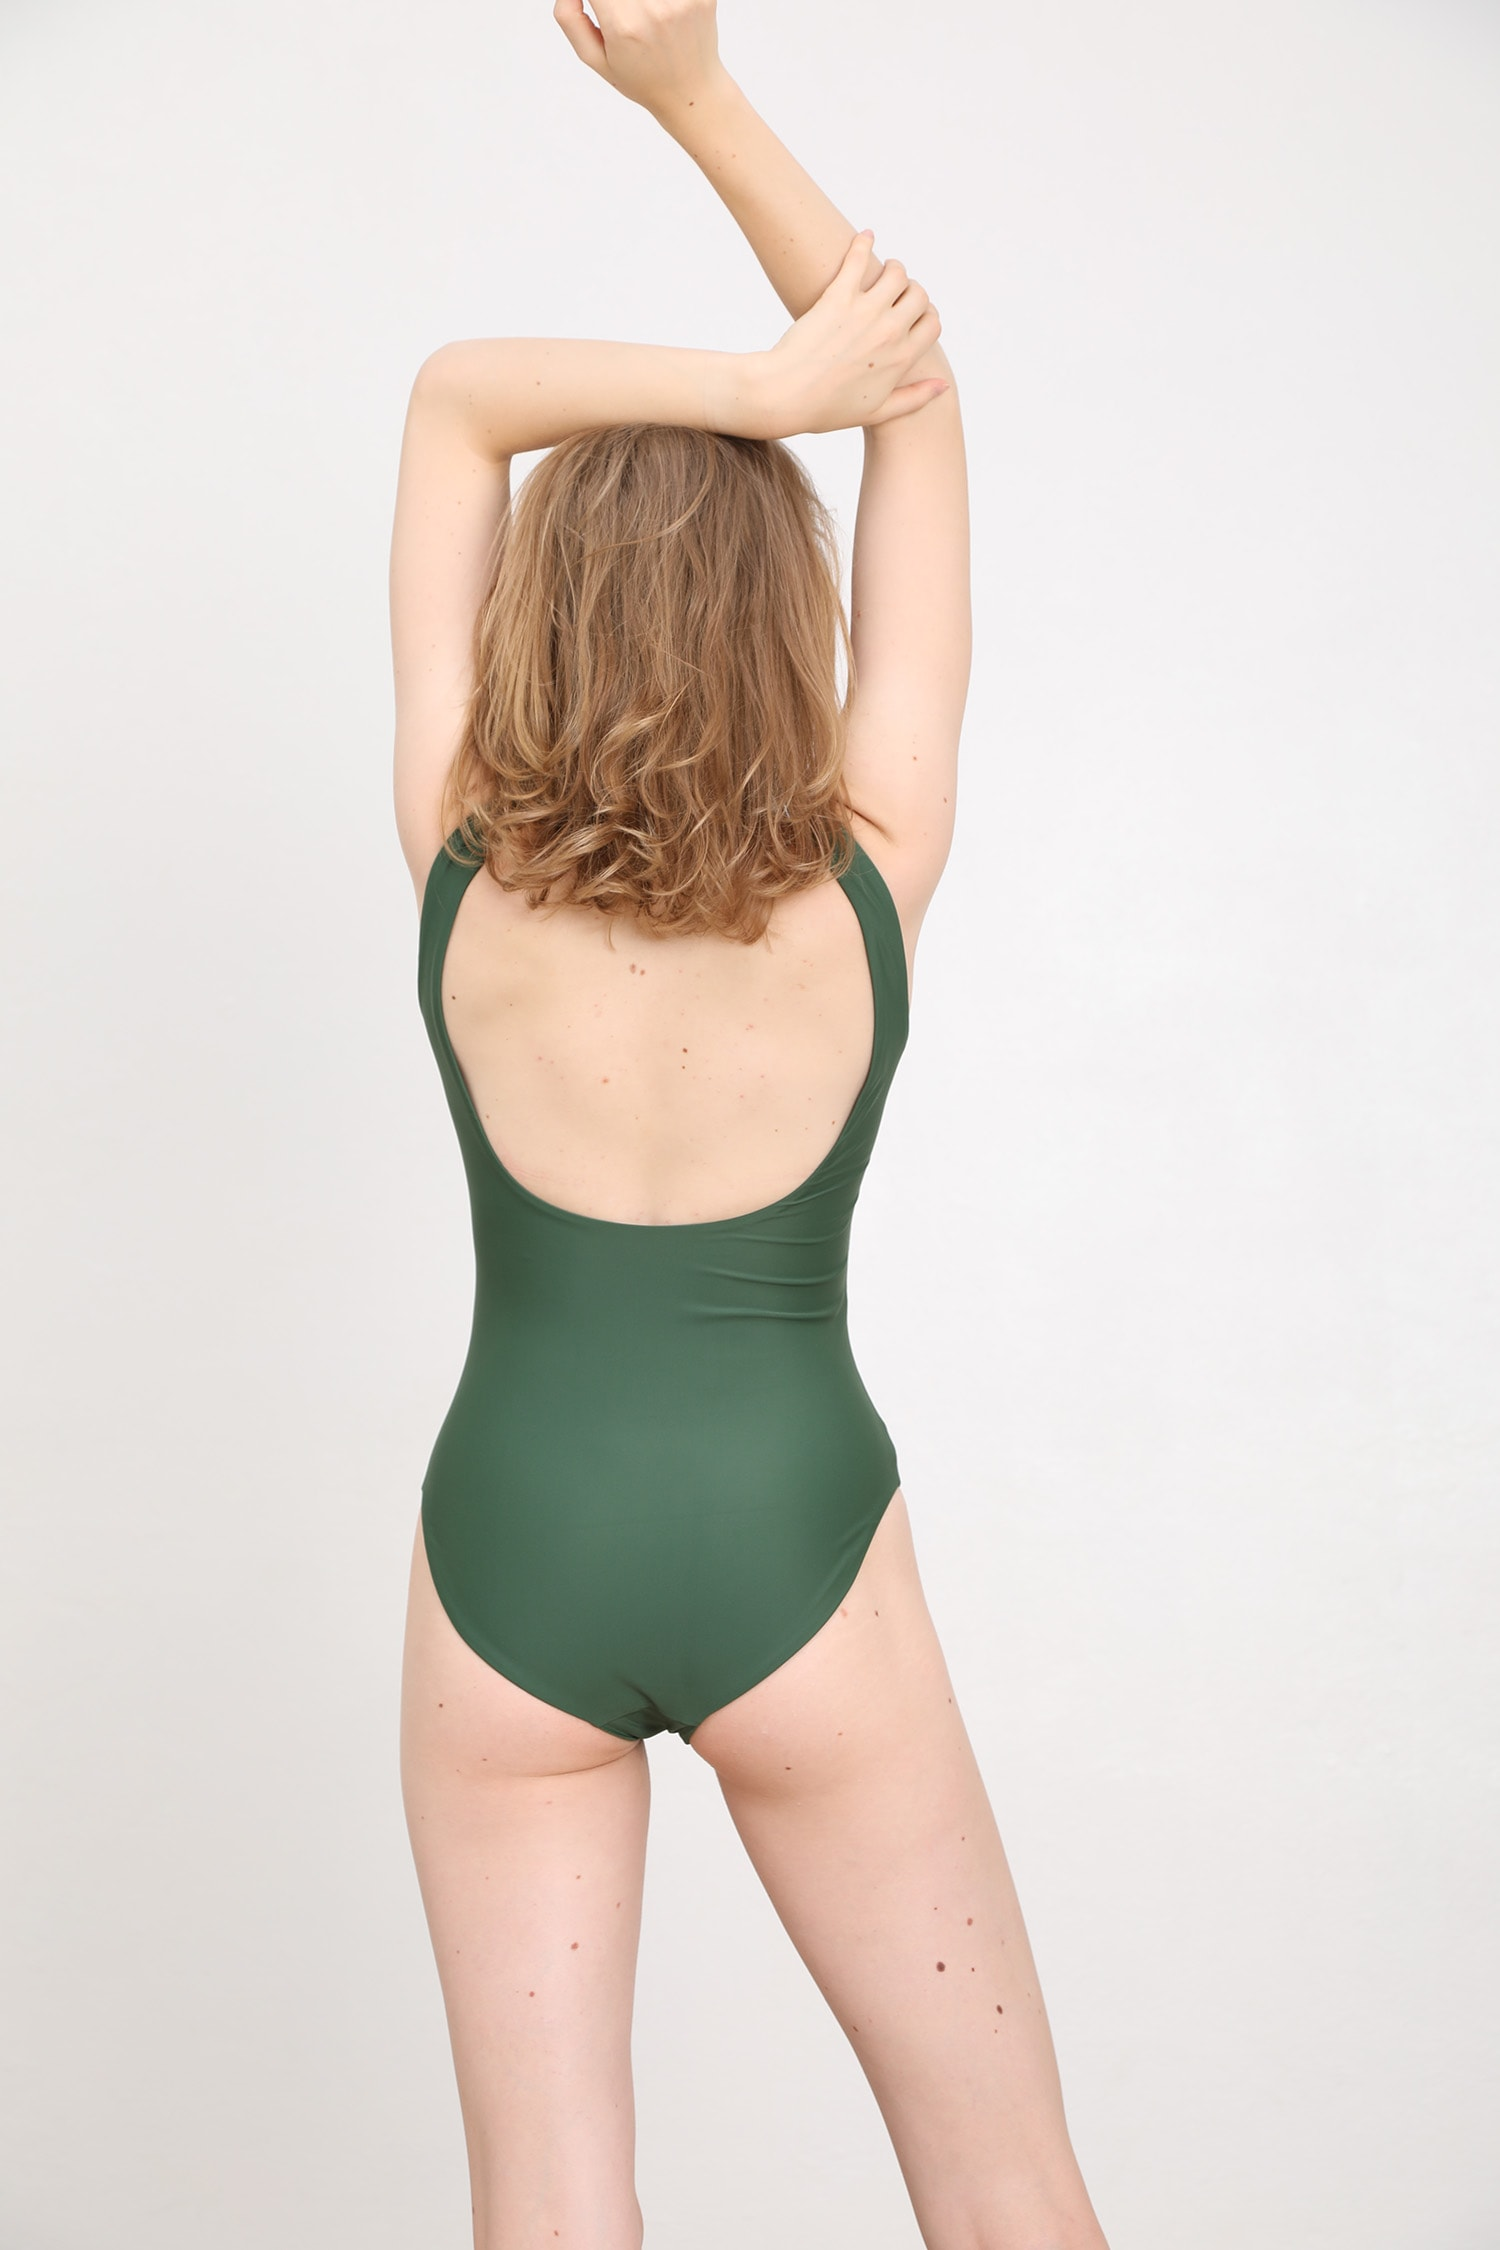 margaret and hermione_ss19_swimsuit no5_dark green_159,00eur_hinten_online